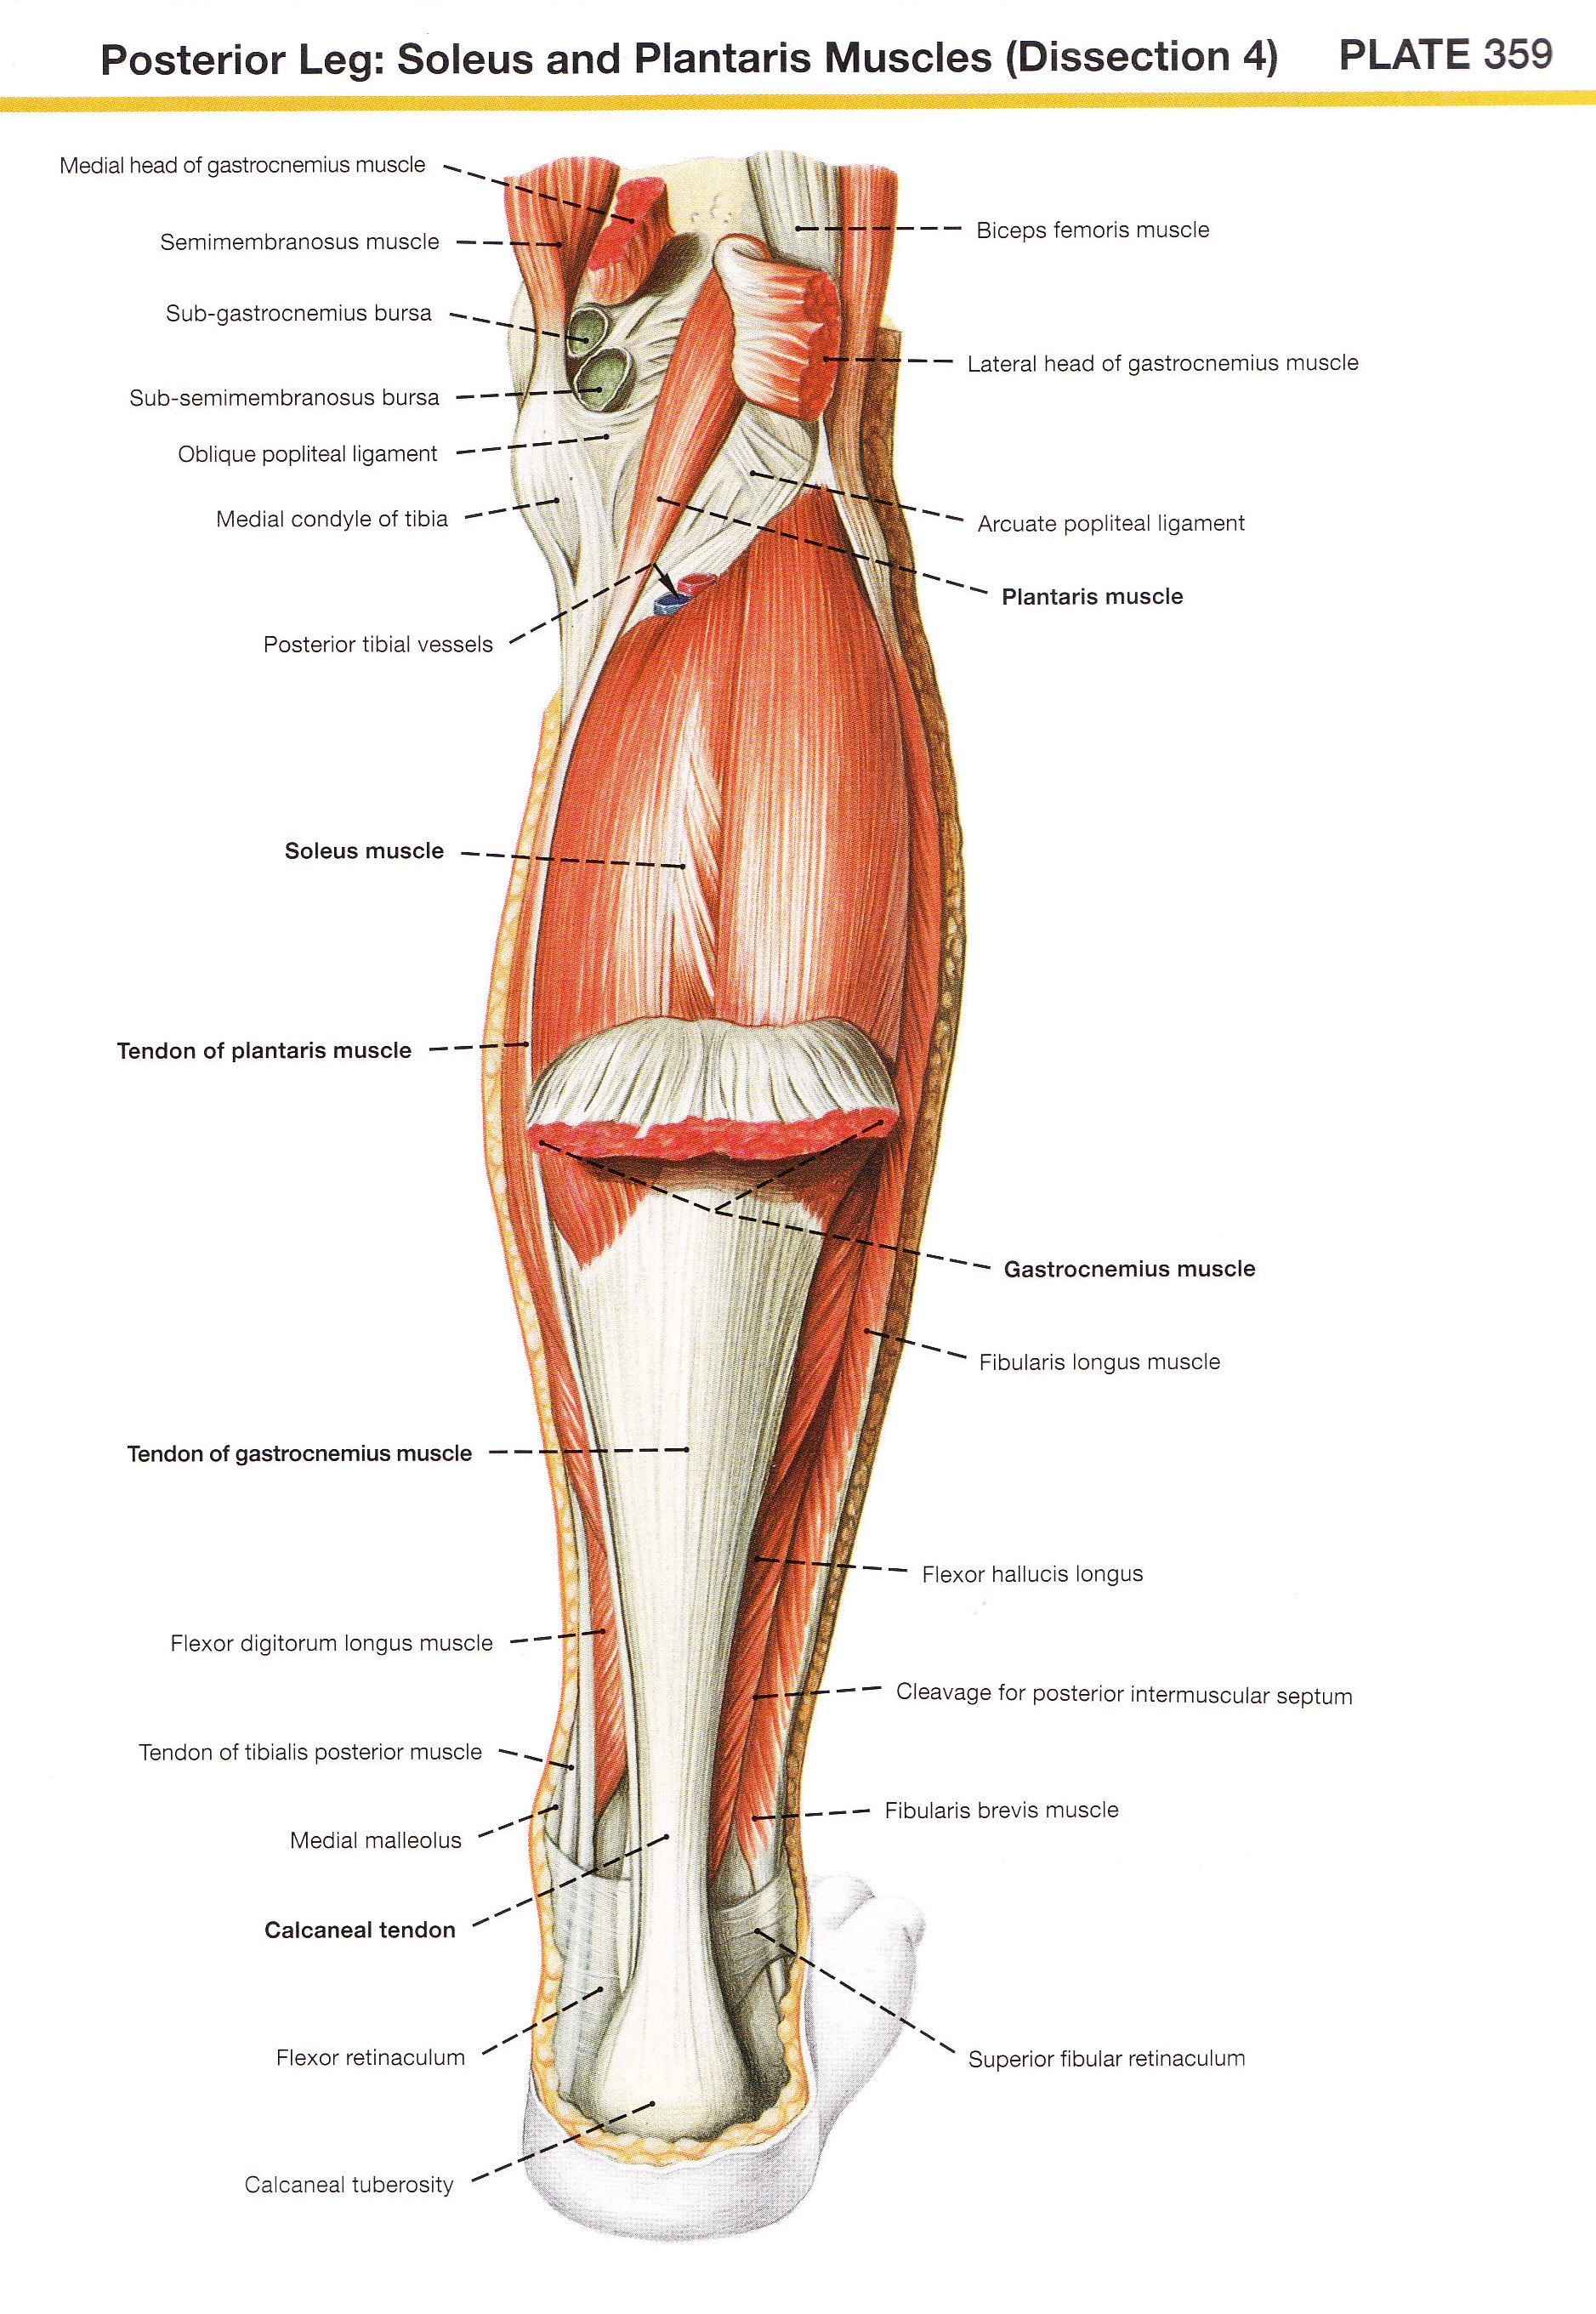 soleus and plantaris muscles | muscle | Pinterest